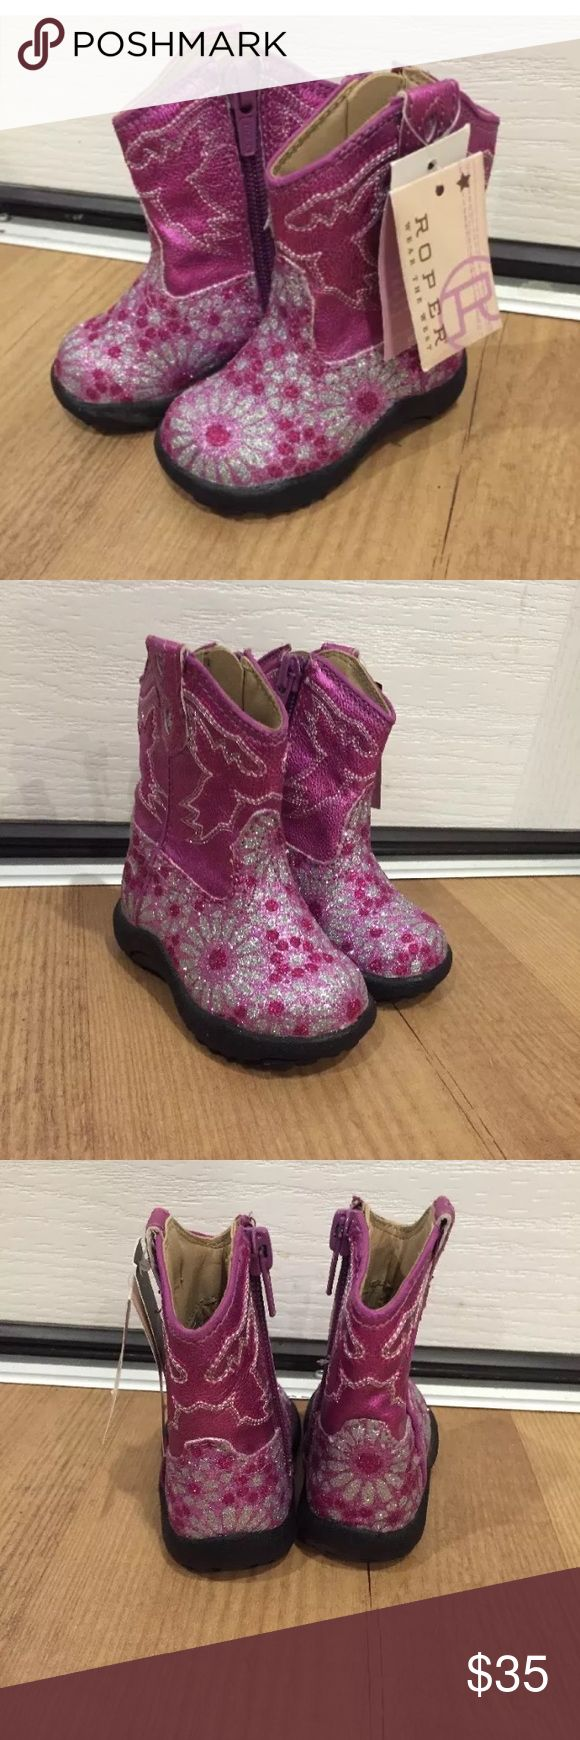 17 Best Ideas About Toddler Cowboy Boots On Pinterest